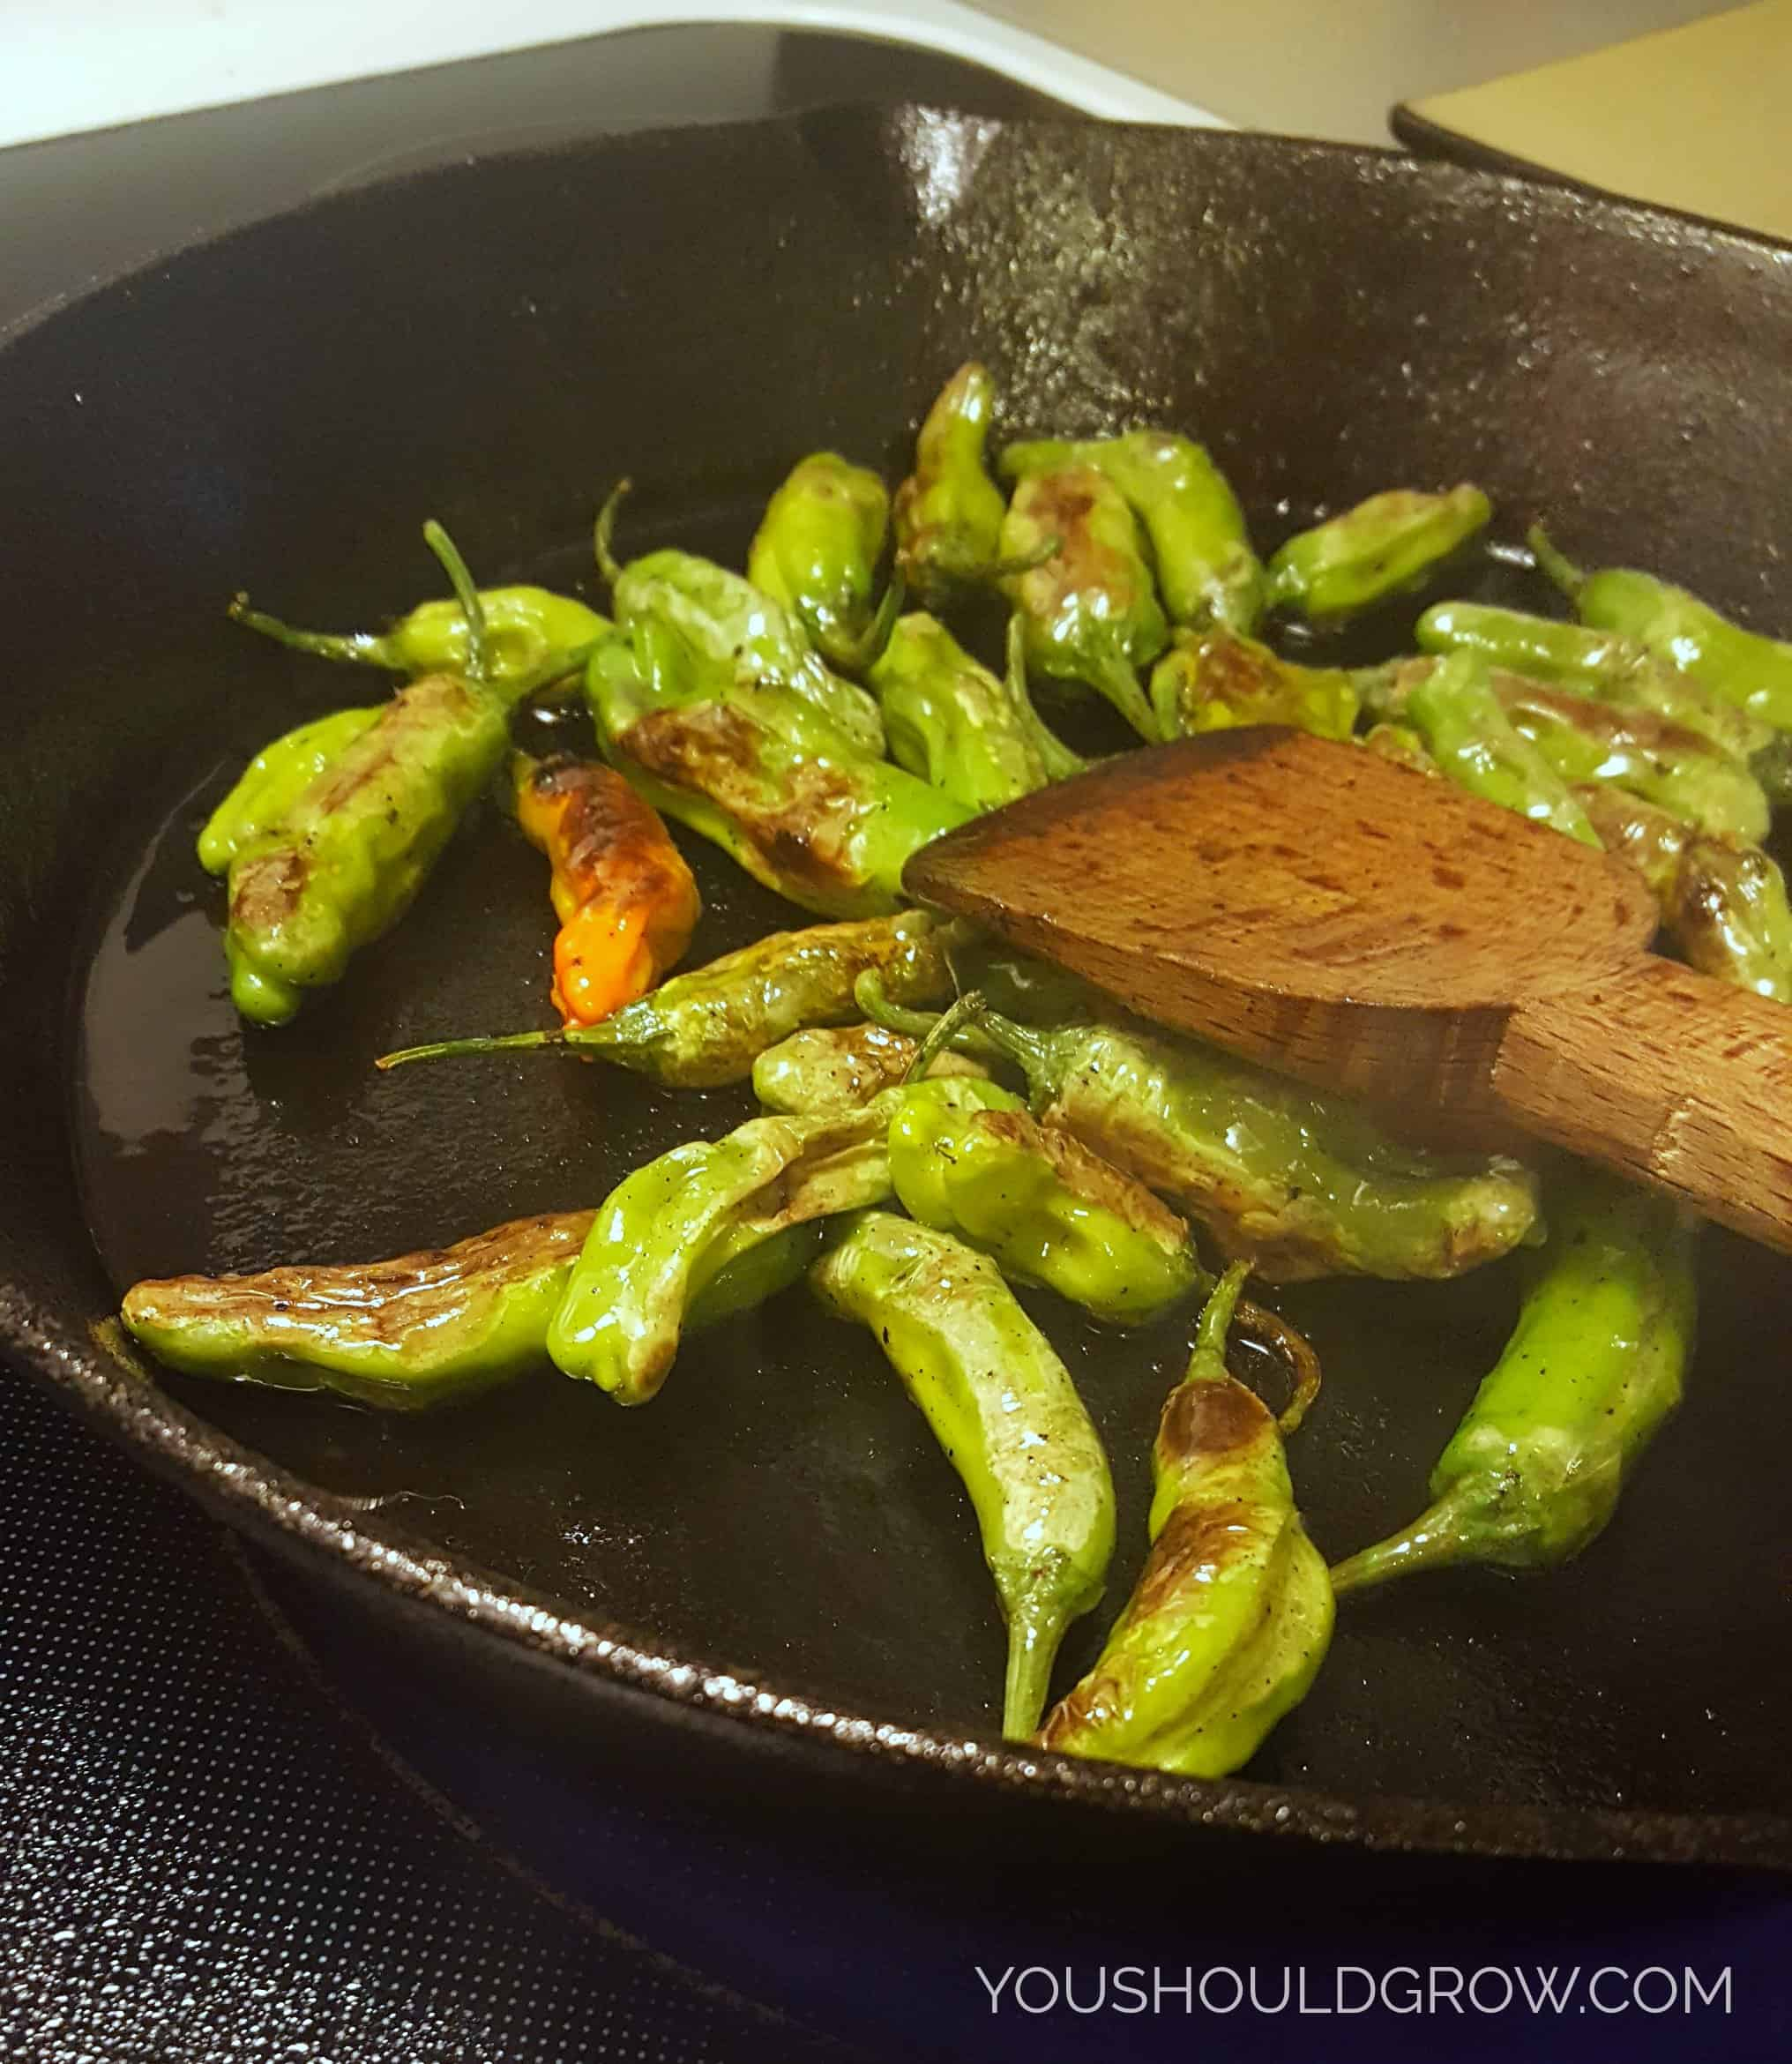 Cook whole shishito peppers over medium heat until their skin blisters.